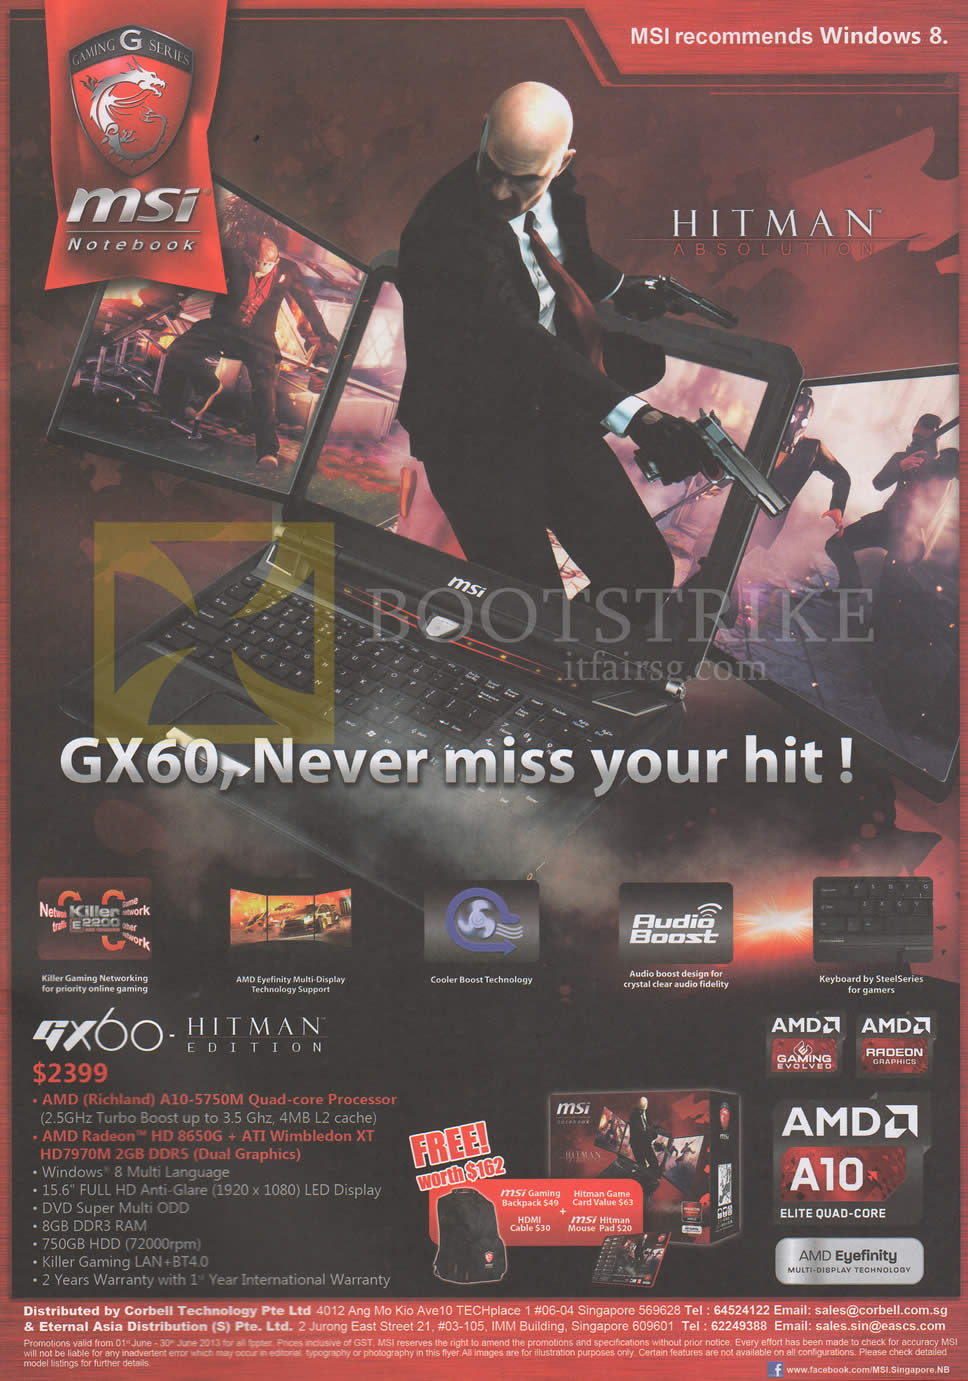 PC SHOW 2013 price list image brochure of MSI Notebook GX60 Hitman Edition